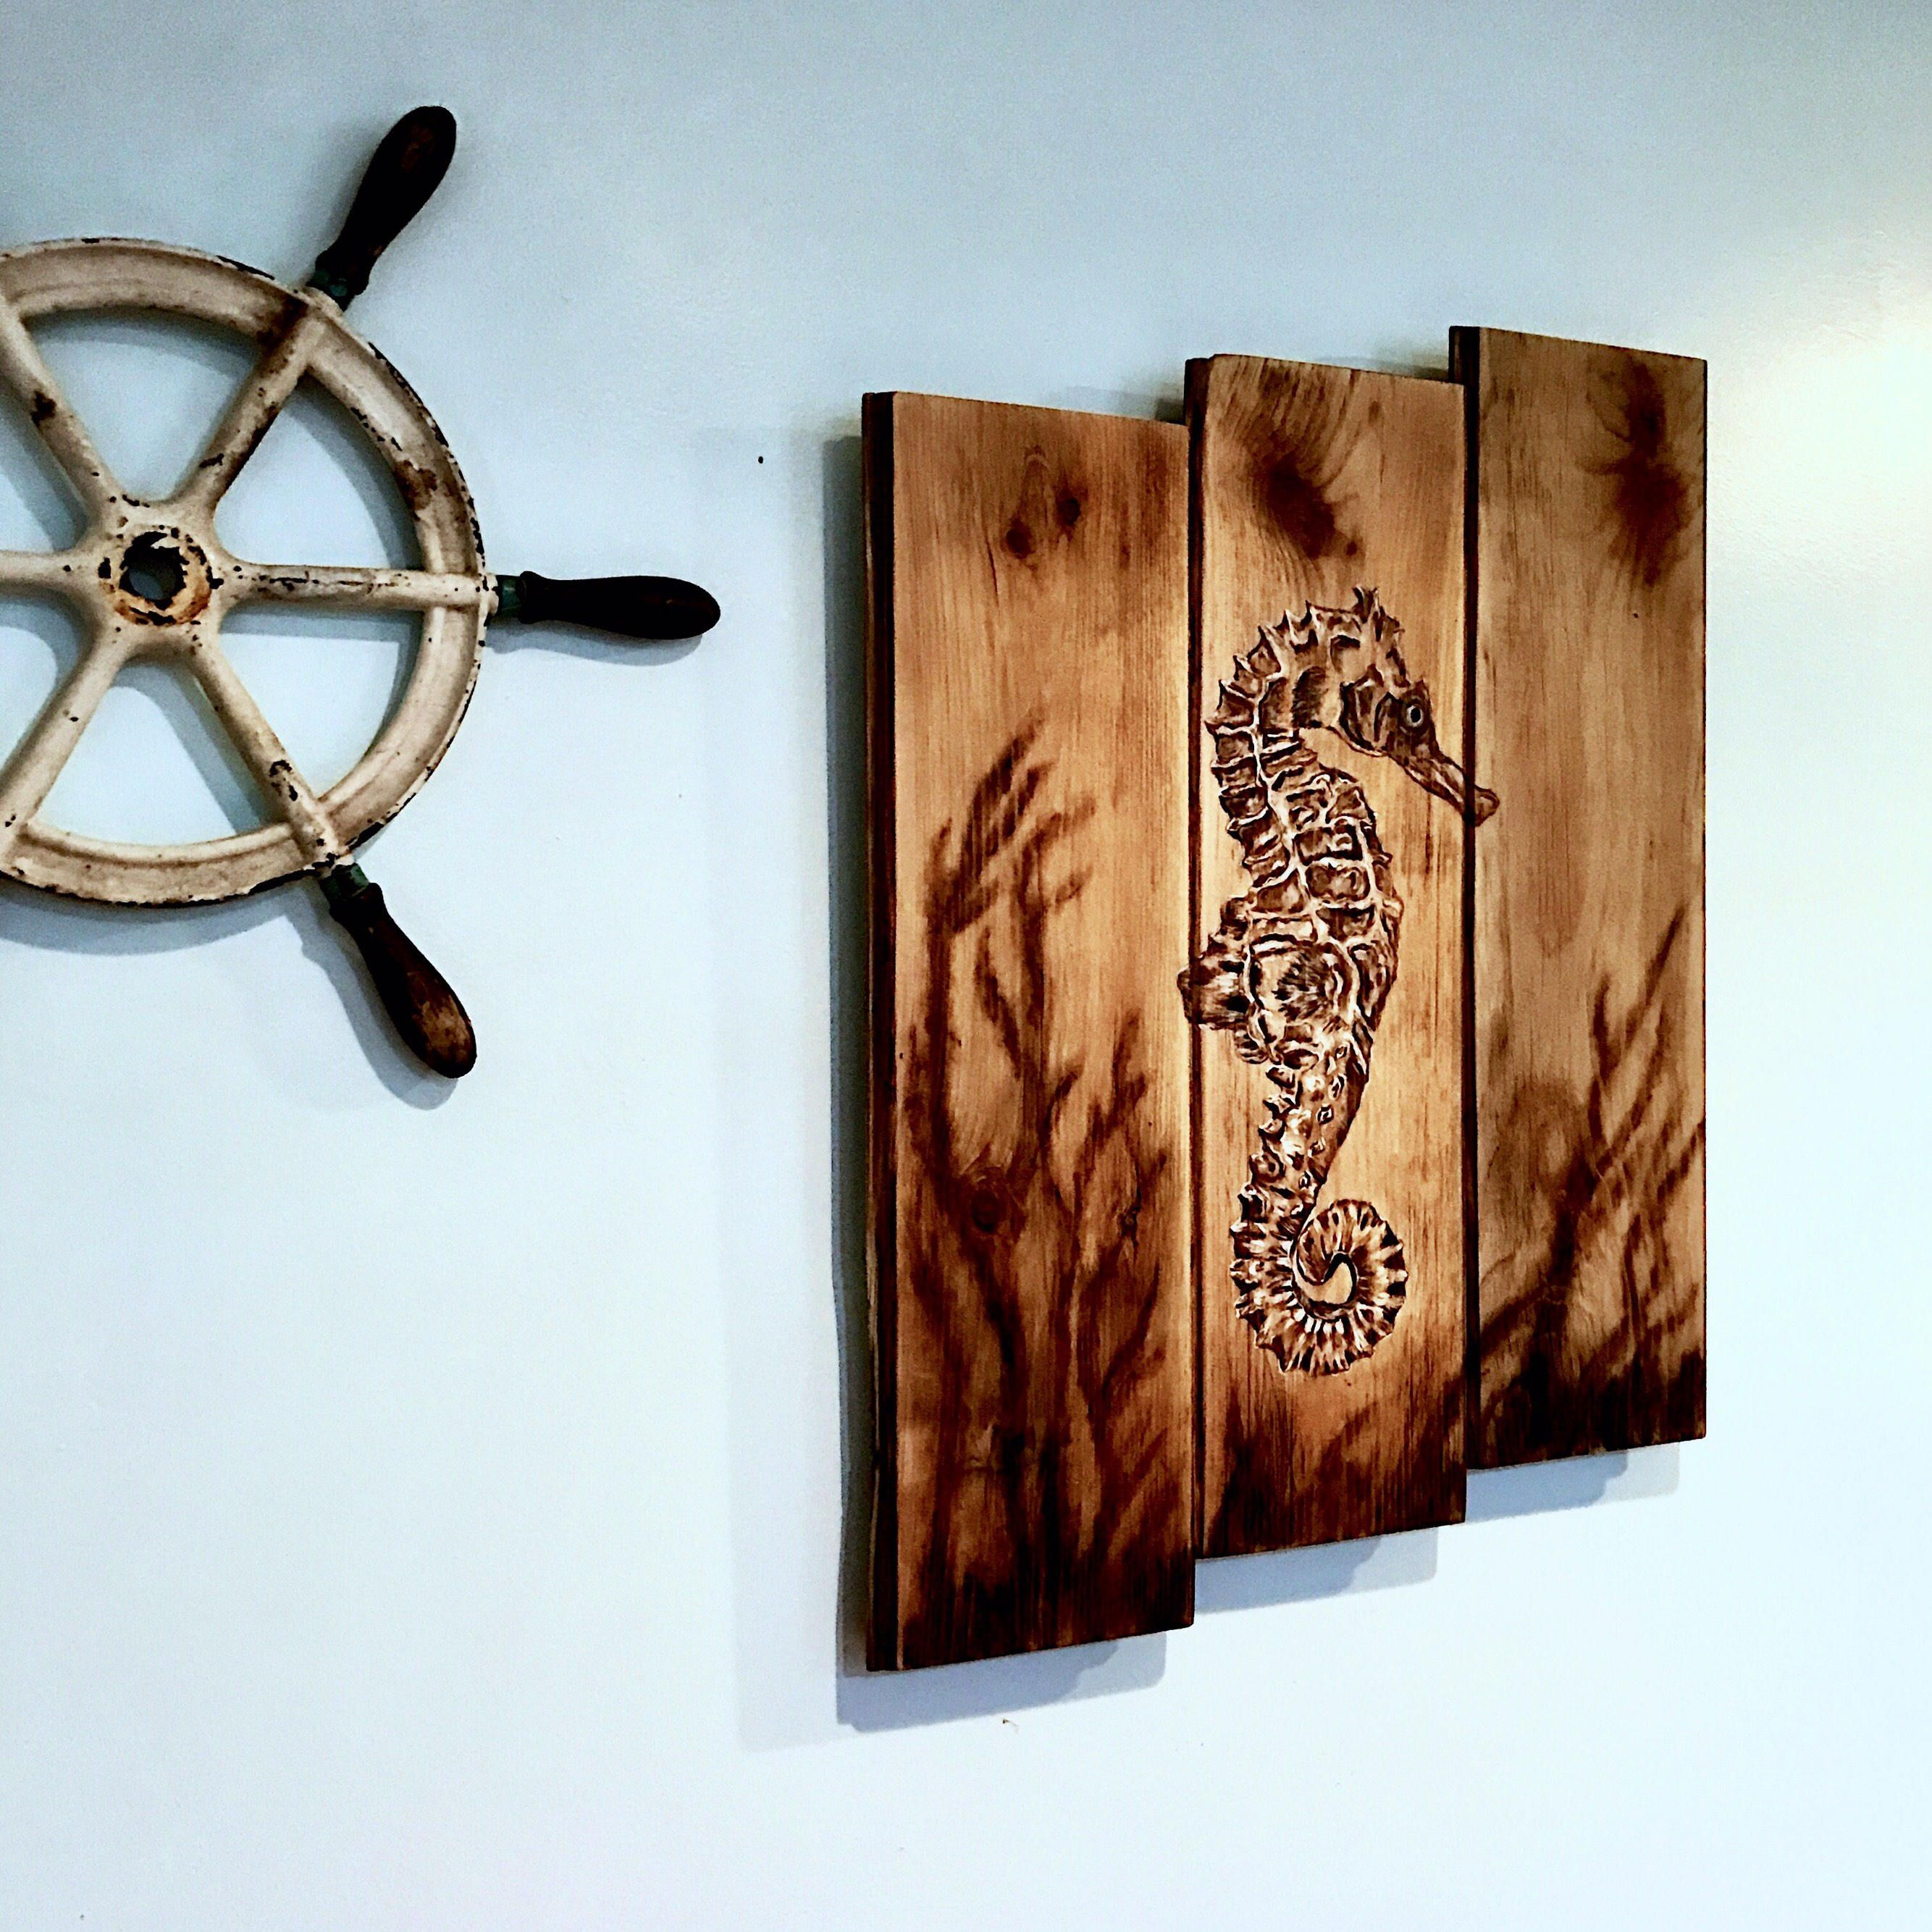 decoration wall anchor wooden store front decorations door decor lake beach nautical hanger